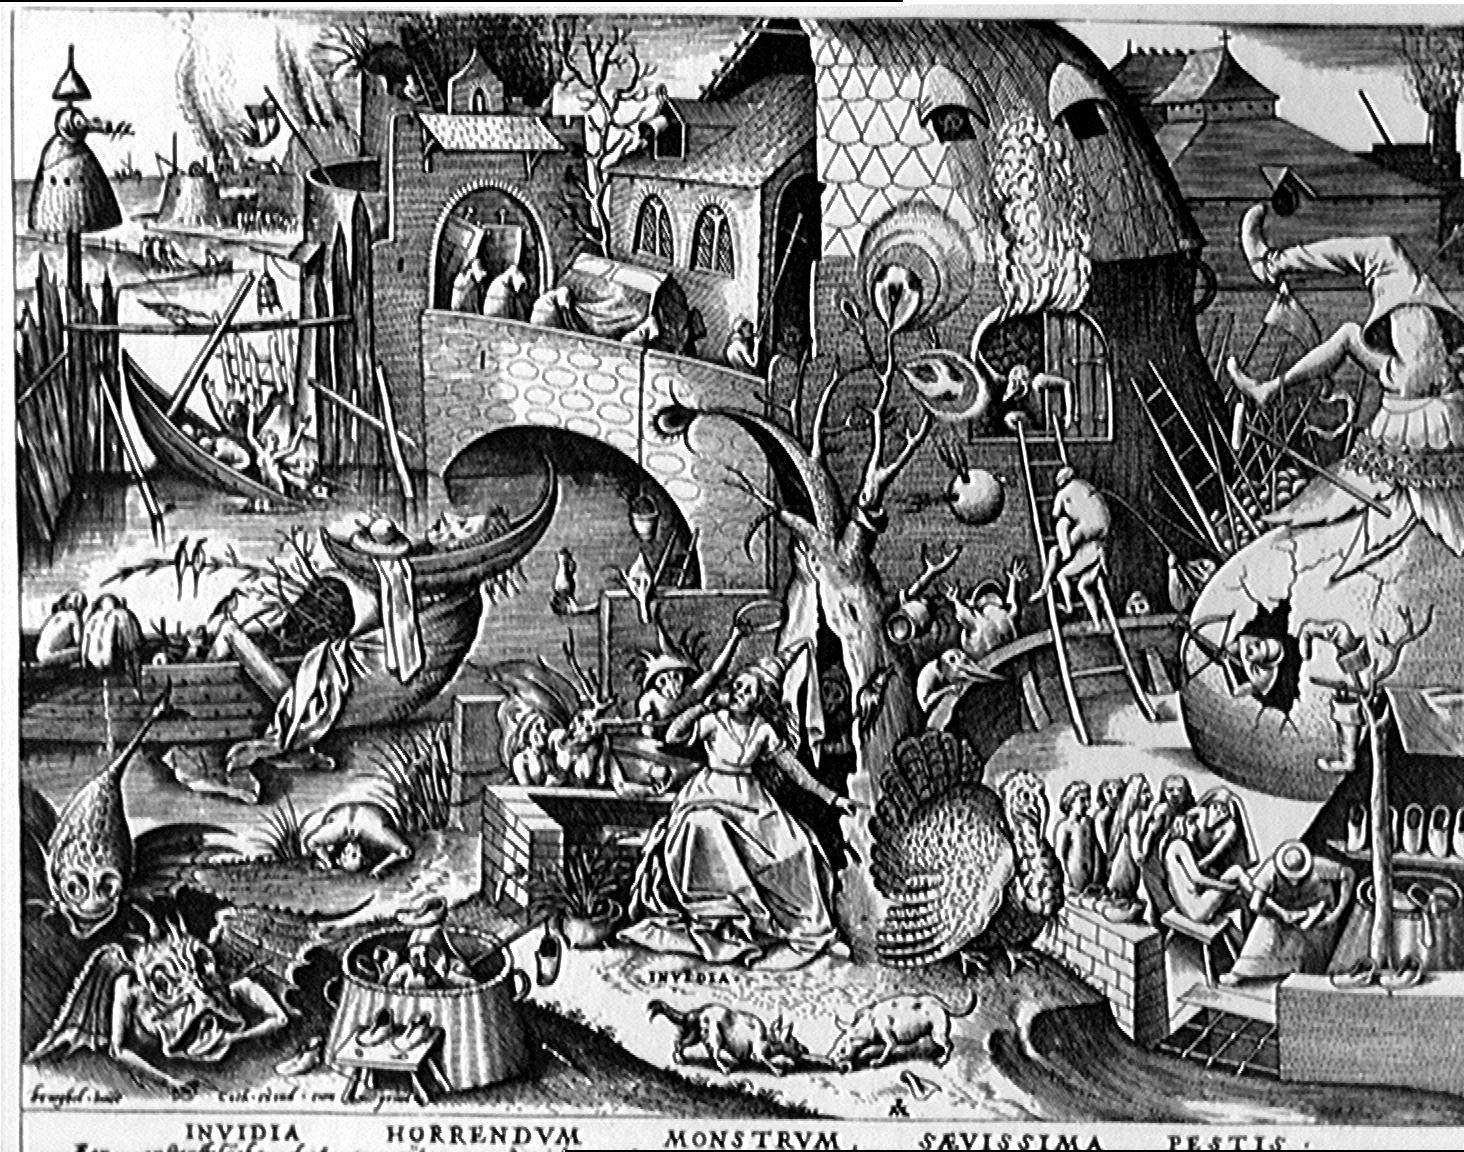 Envy  by Pieter Bruegel the Elder, c.1558. Engraving published by Hieronymus Cock. Bibliothèque Royale, Cabinet Estampes, Brüssel The Seven Deadly Sins or the Seven Vices